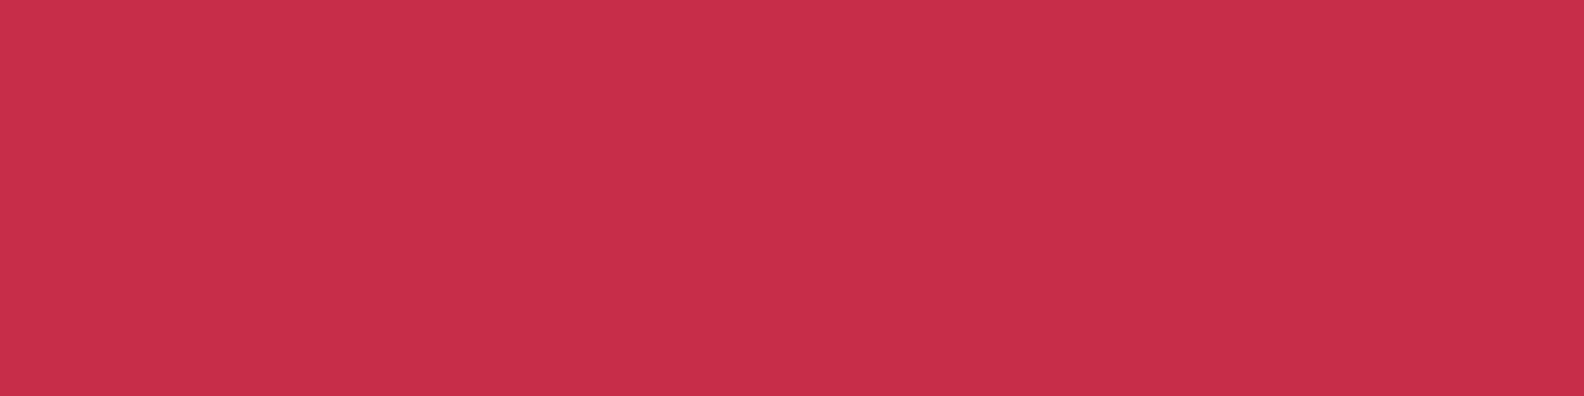 1584x396 French Raspberry Solid Color Background